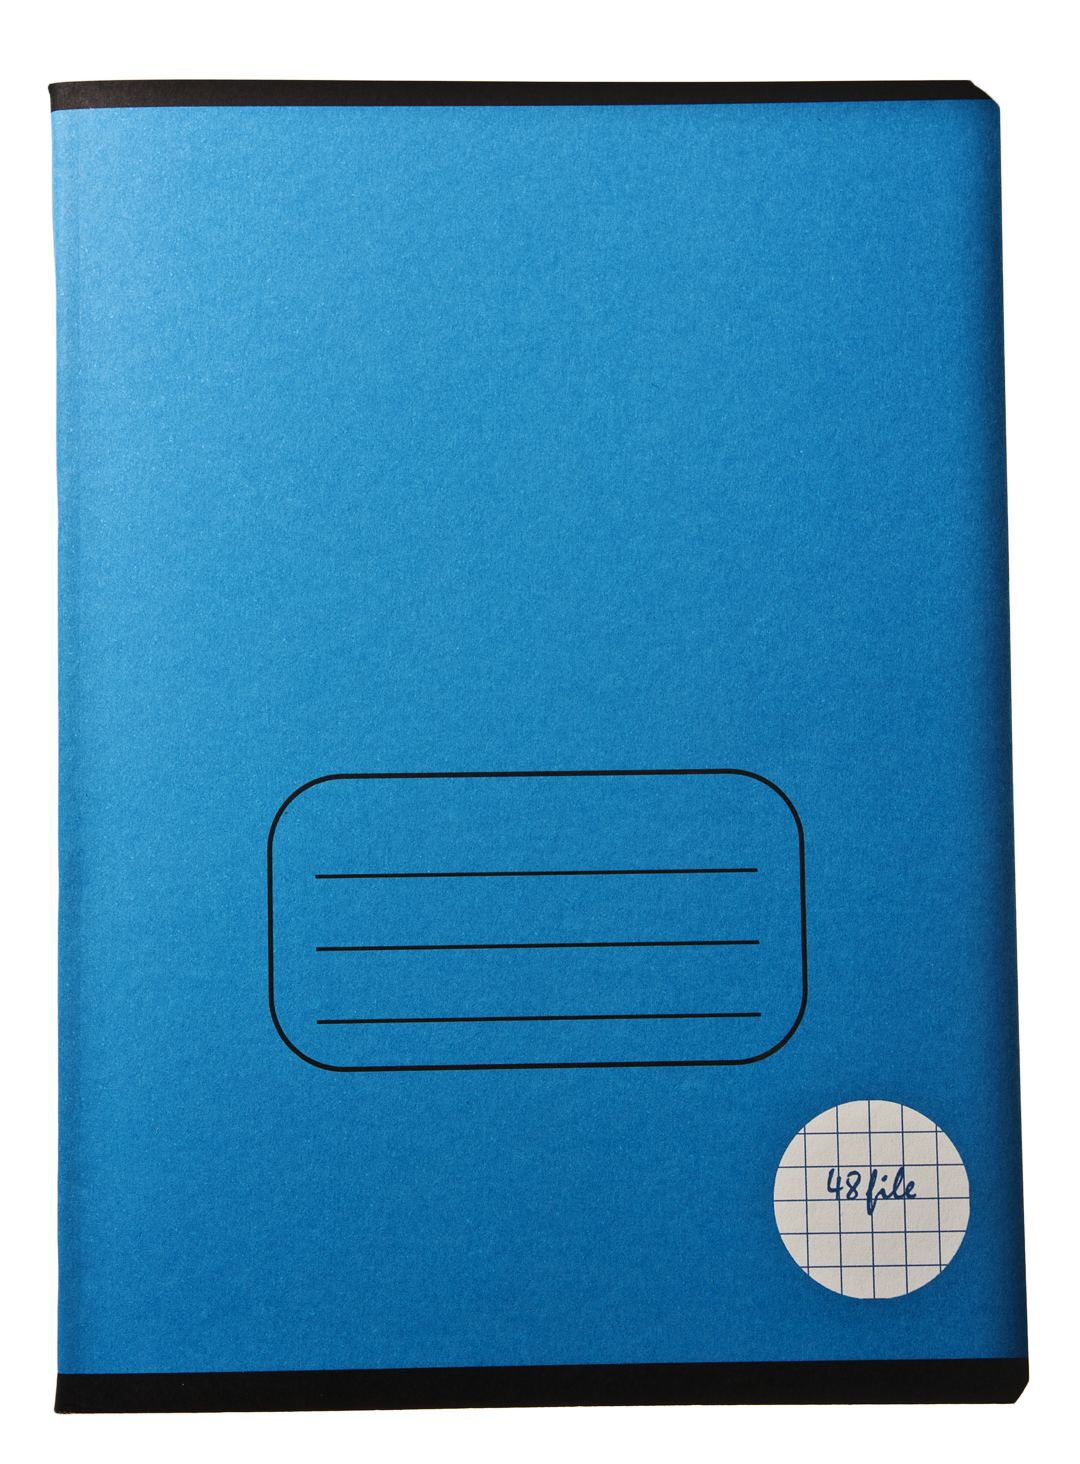 Notebook transparent blue. Paper backgrounds royalty free